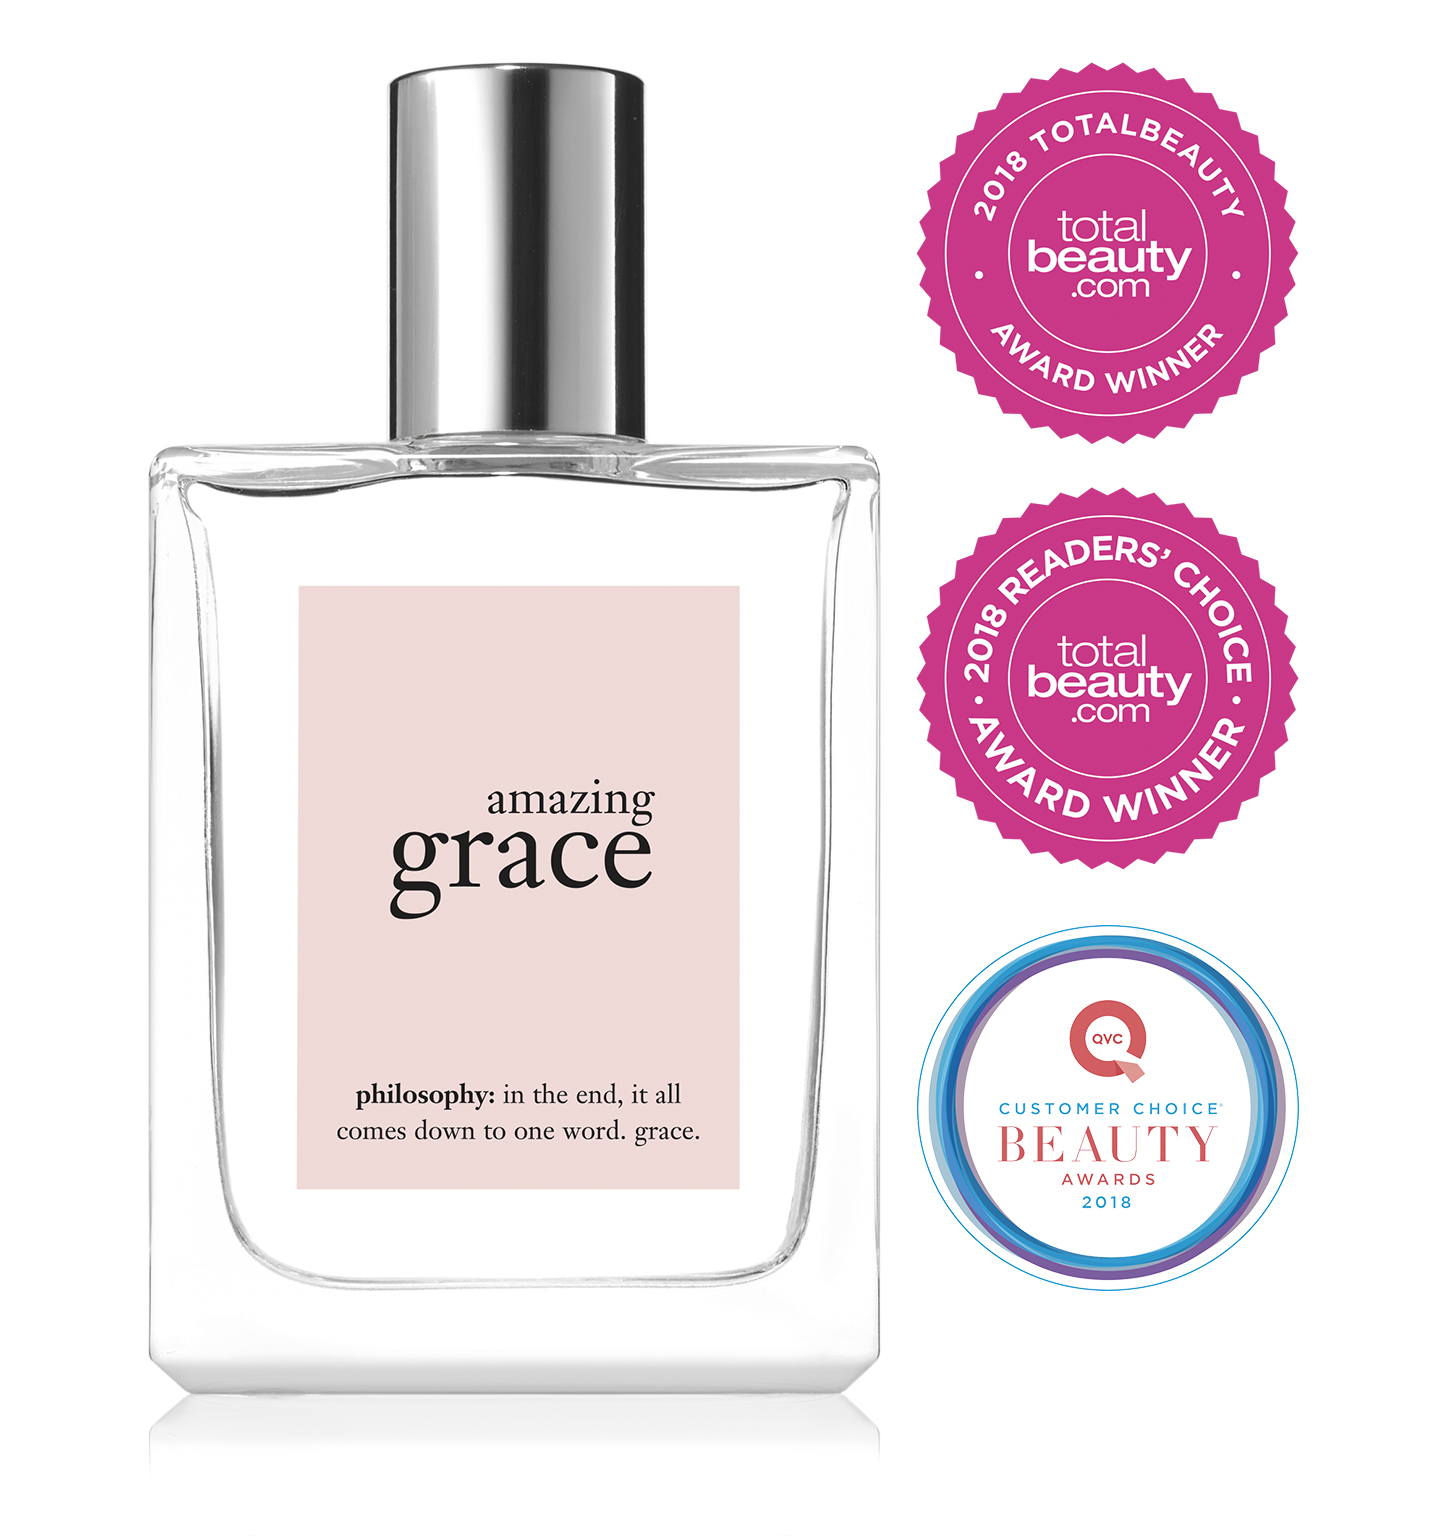 Amazing Grace Floral Perfume Philosophy Master Spray Cologne Black Musk